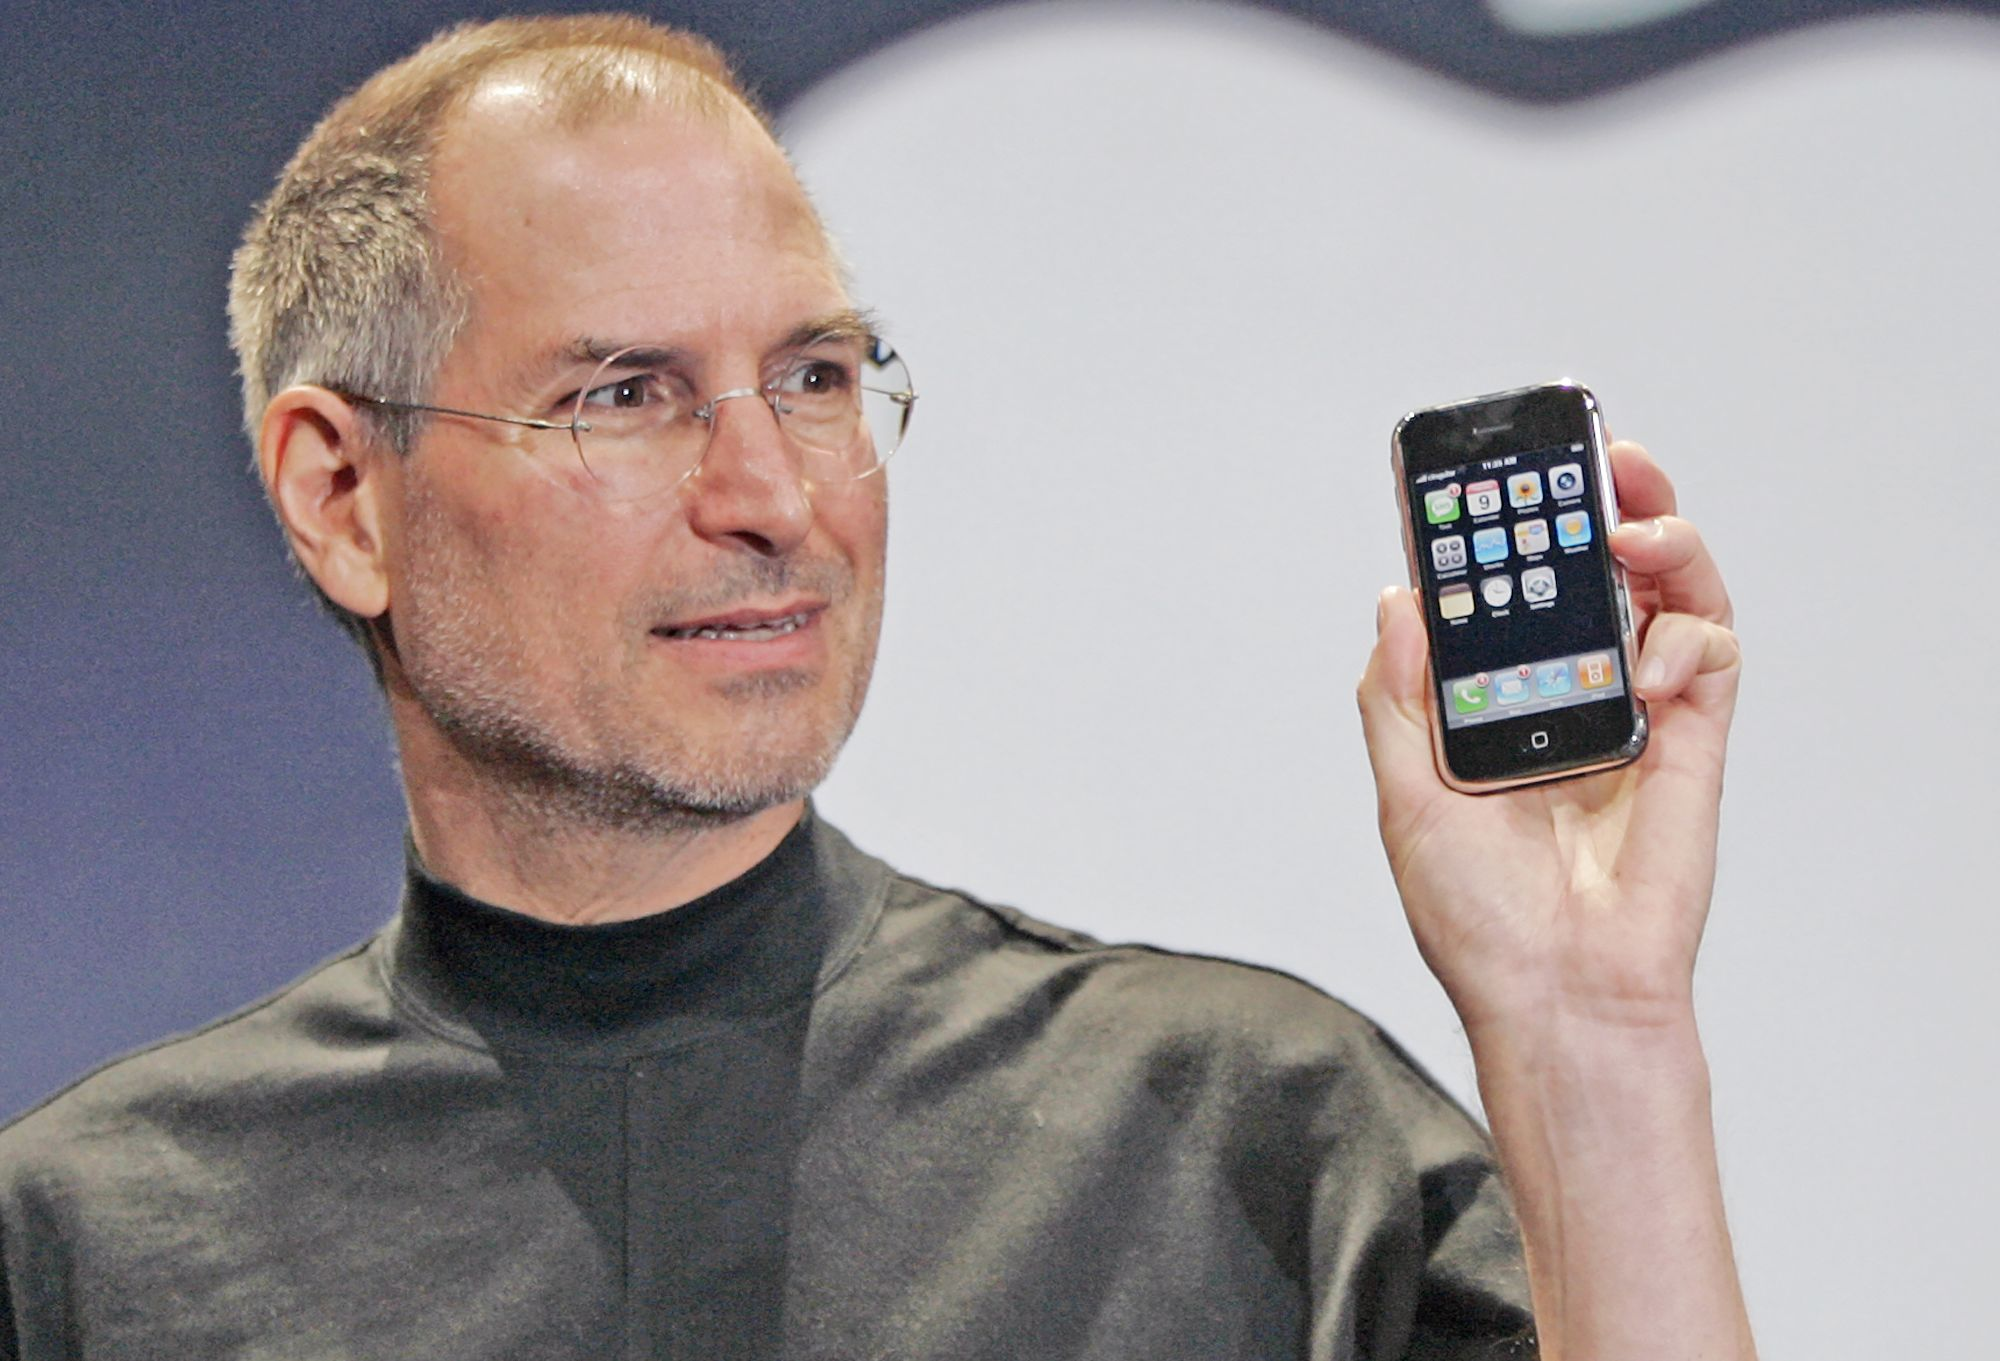 Steve Jobs presentando su iphone